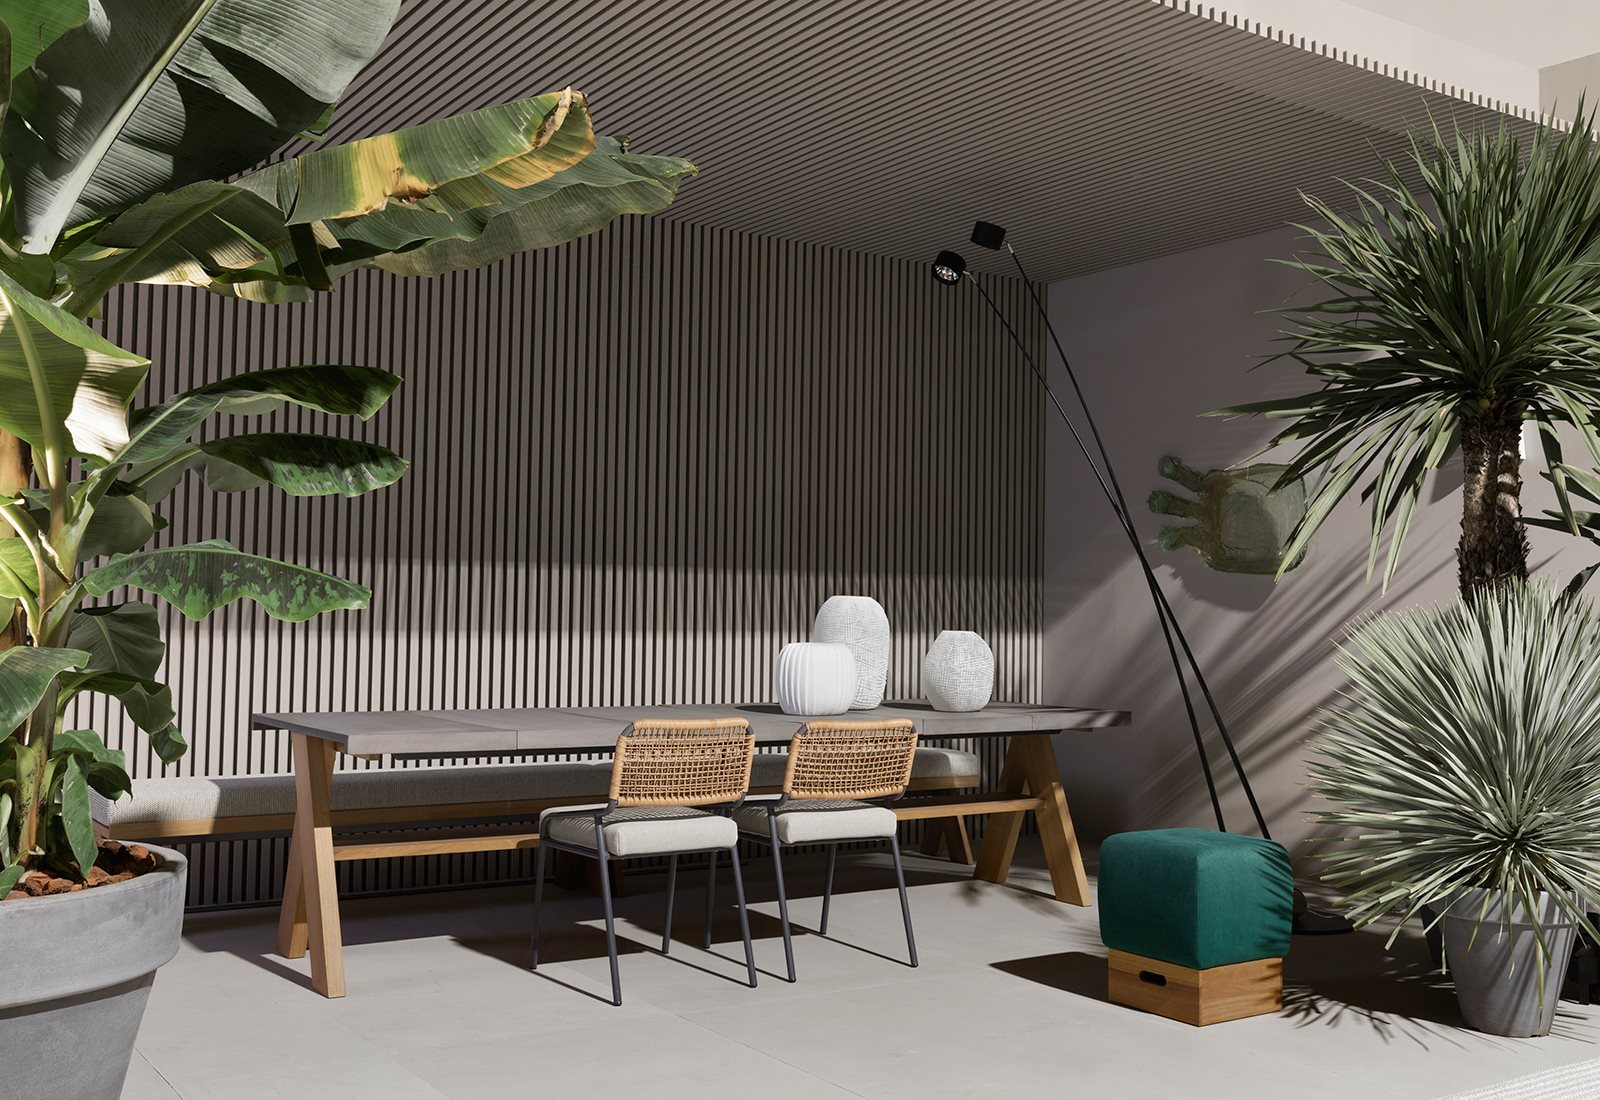 Meridiani introduces the Blend collection